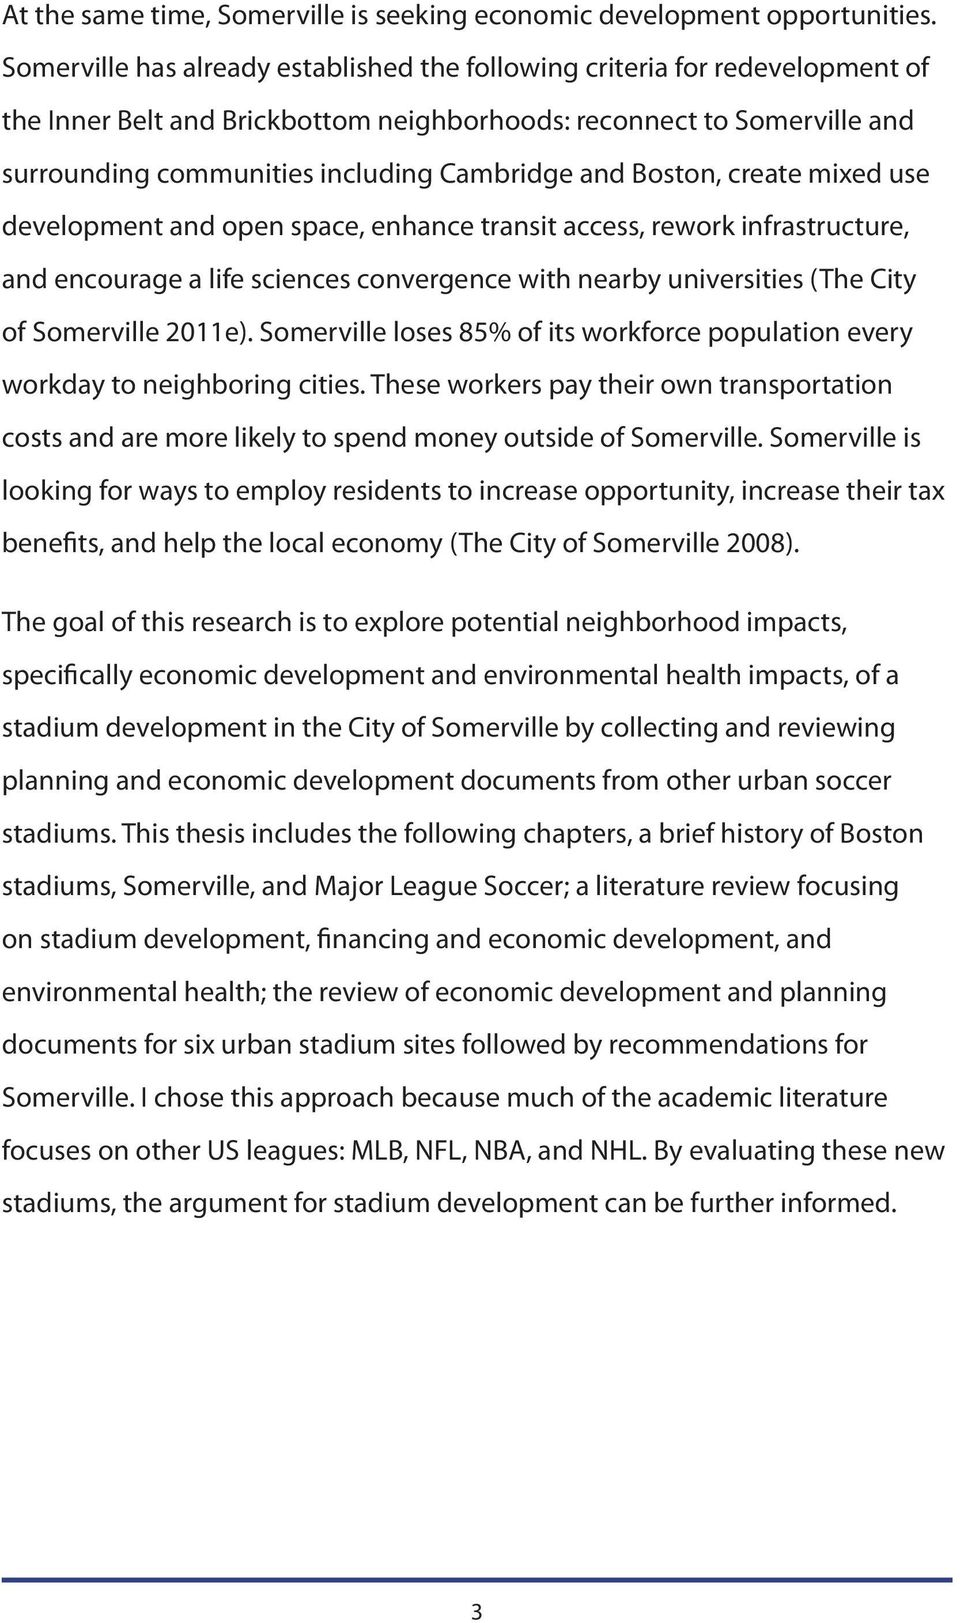 and Boston, create mixed use development and open space, enhance transit access, rework infrastructure, and encourage a life sciences convergence with nearby universities (The City of Somerville